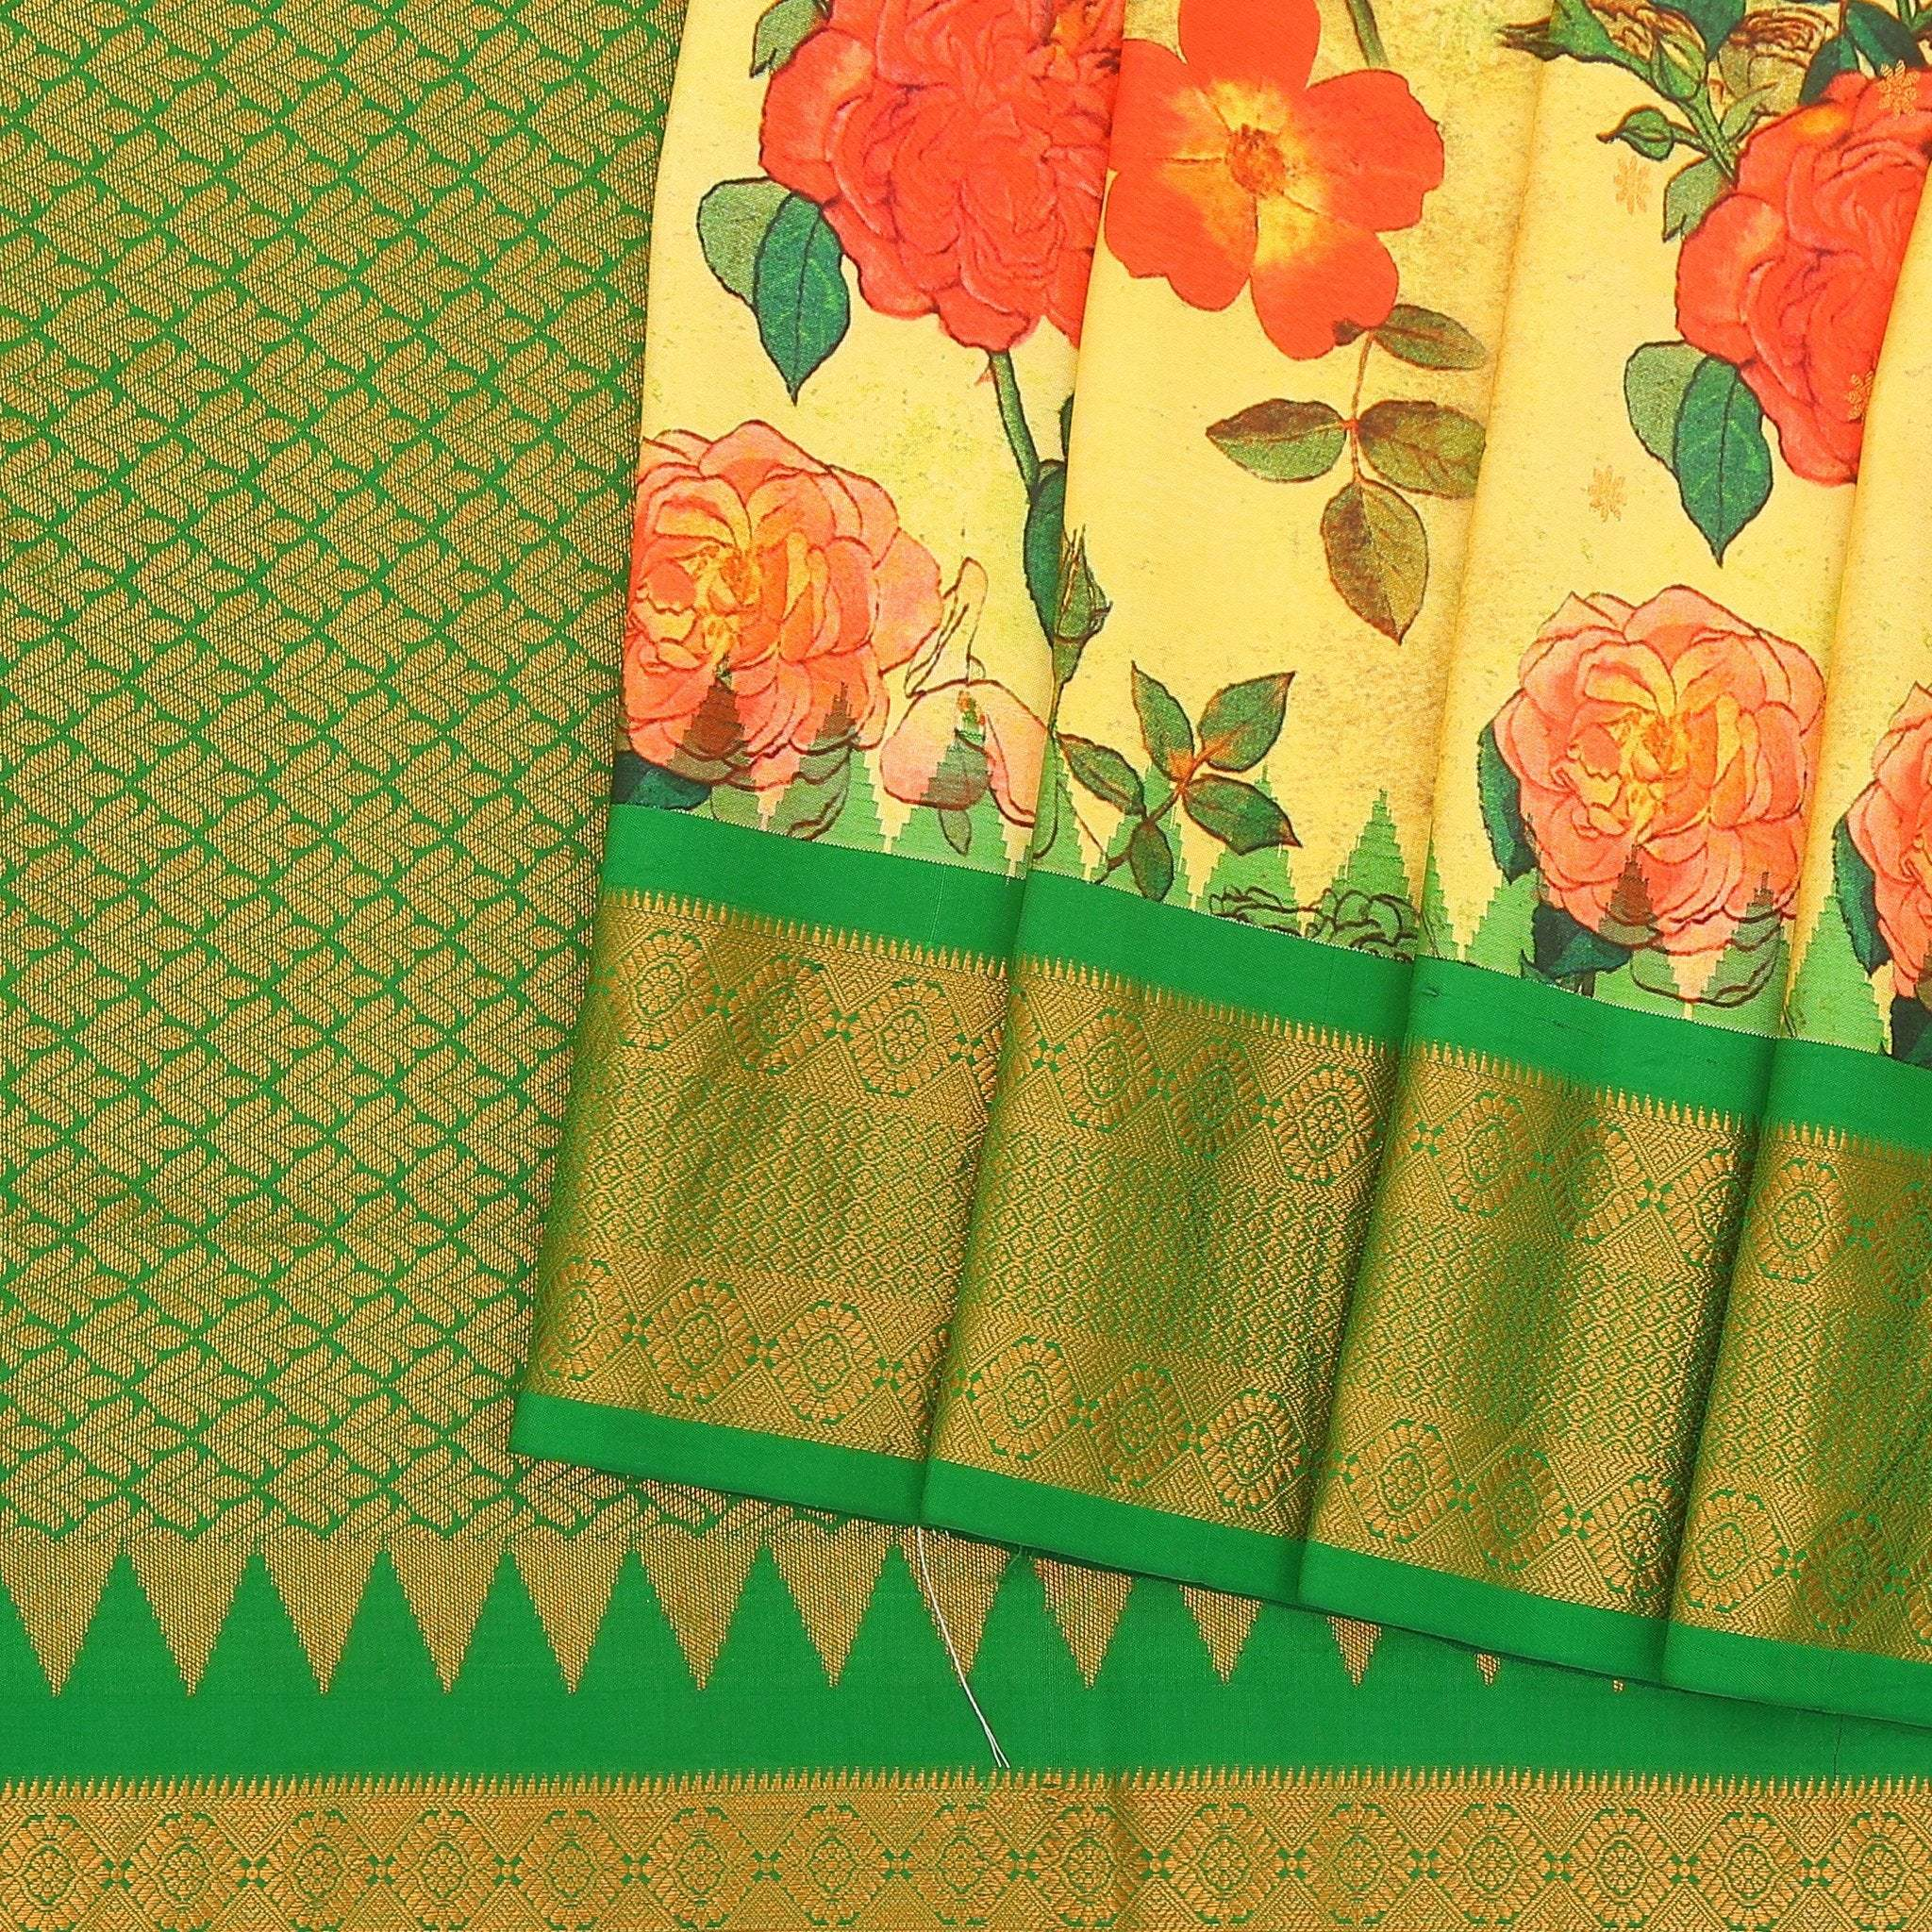 Lemon-Yellow-bold-Floral-Printed-Kanjivaram-Handloom-Silk-Saree